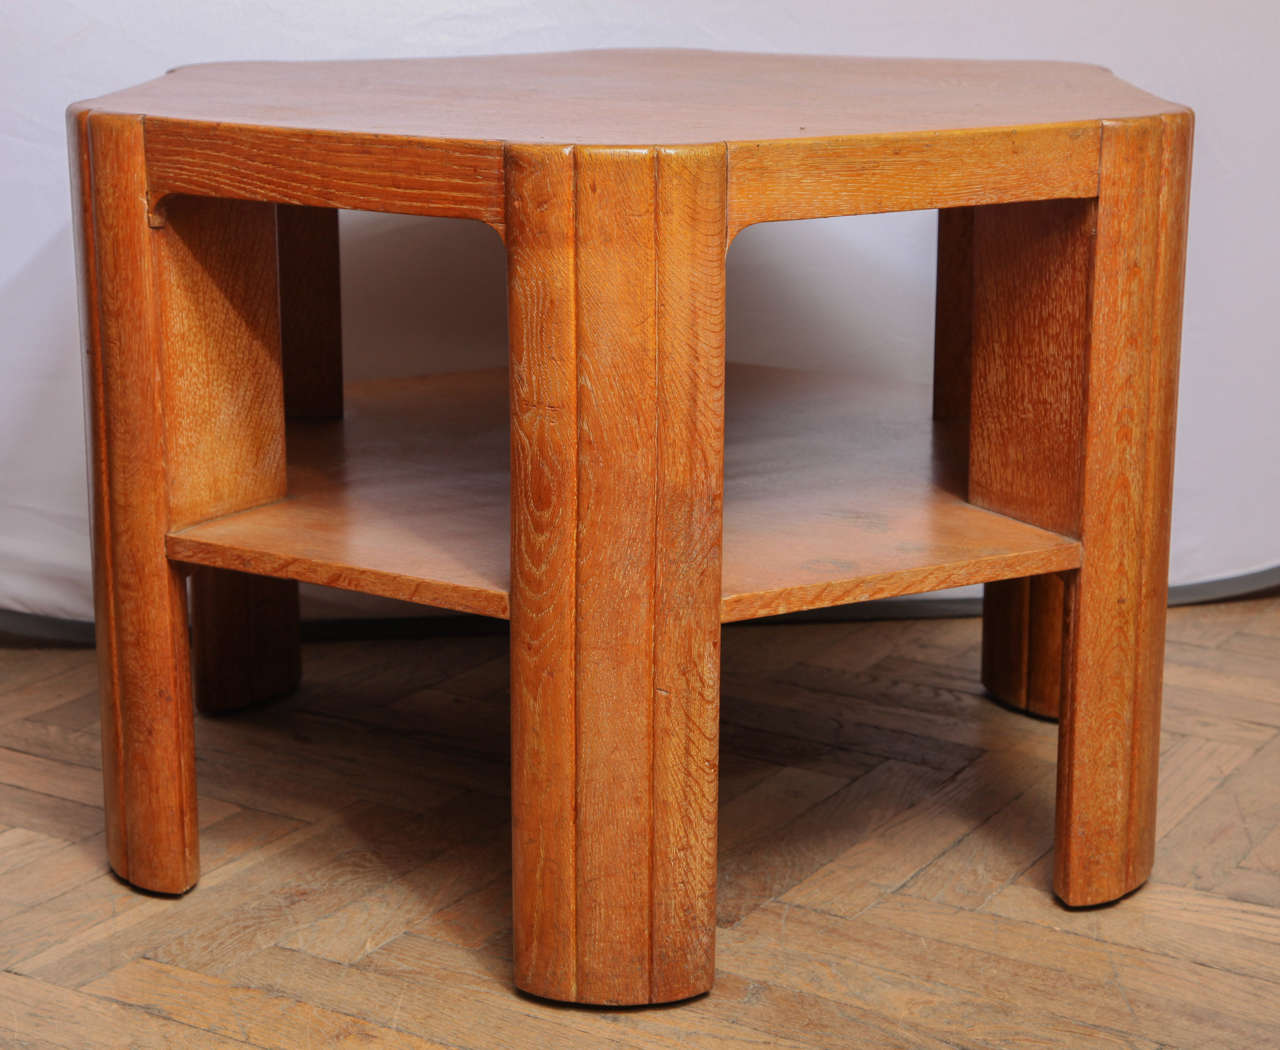 1930's Heal's Booktable At 1stdibs